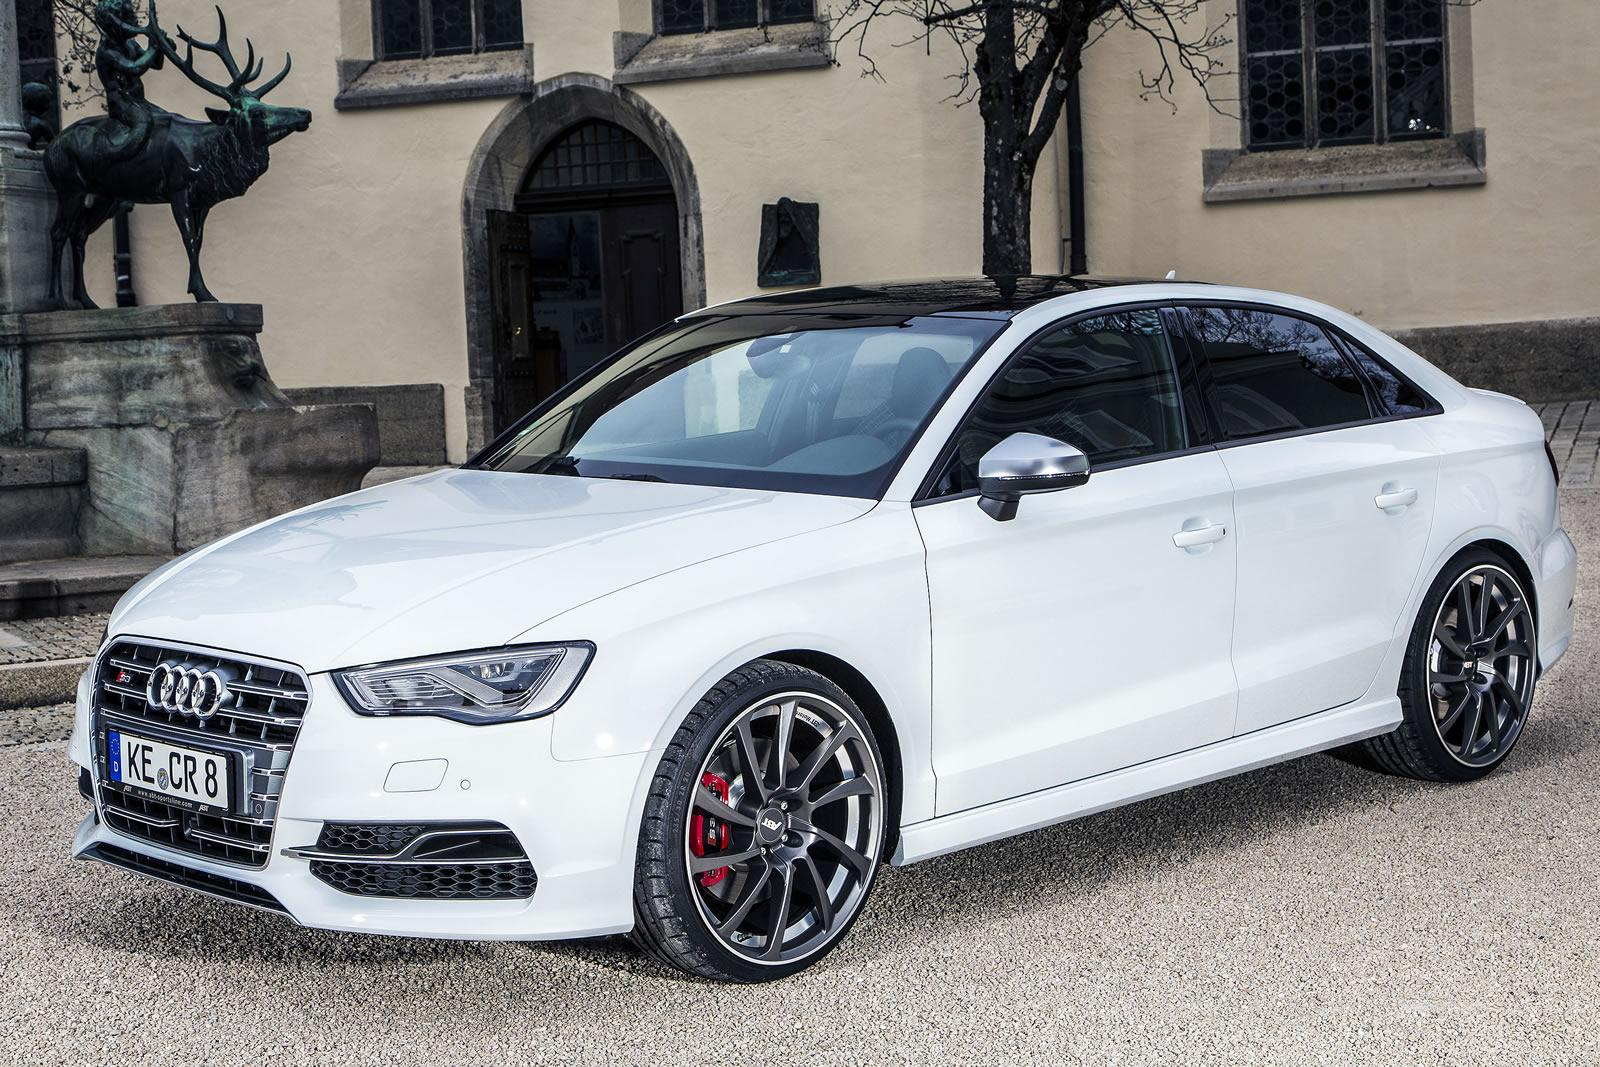 Q7 Review >> Audi Tuning: ABT-tuned S3 Sedan does 0-100km/h in 4.5s